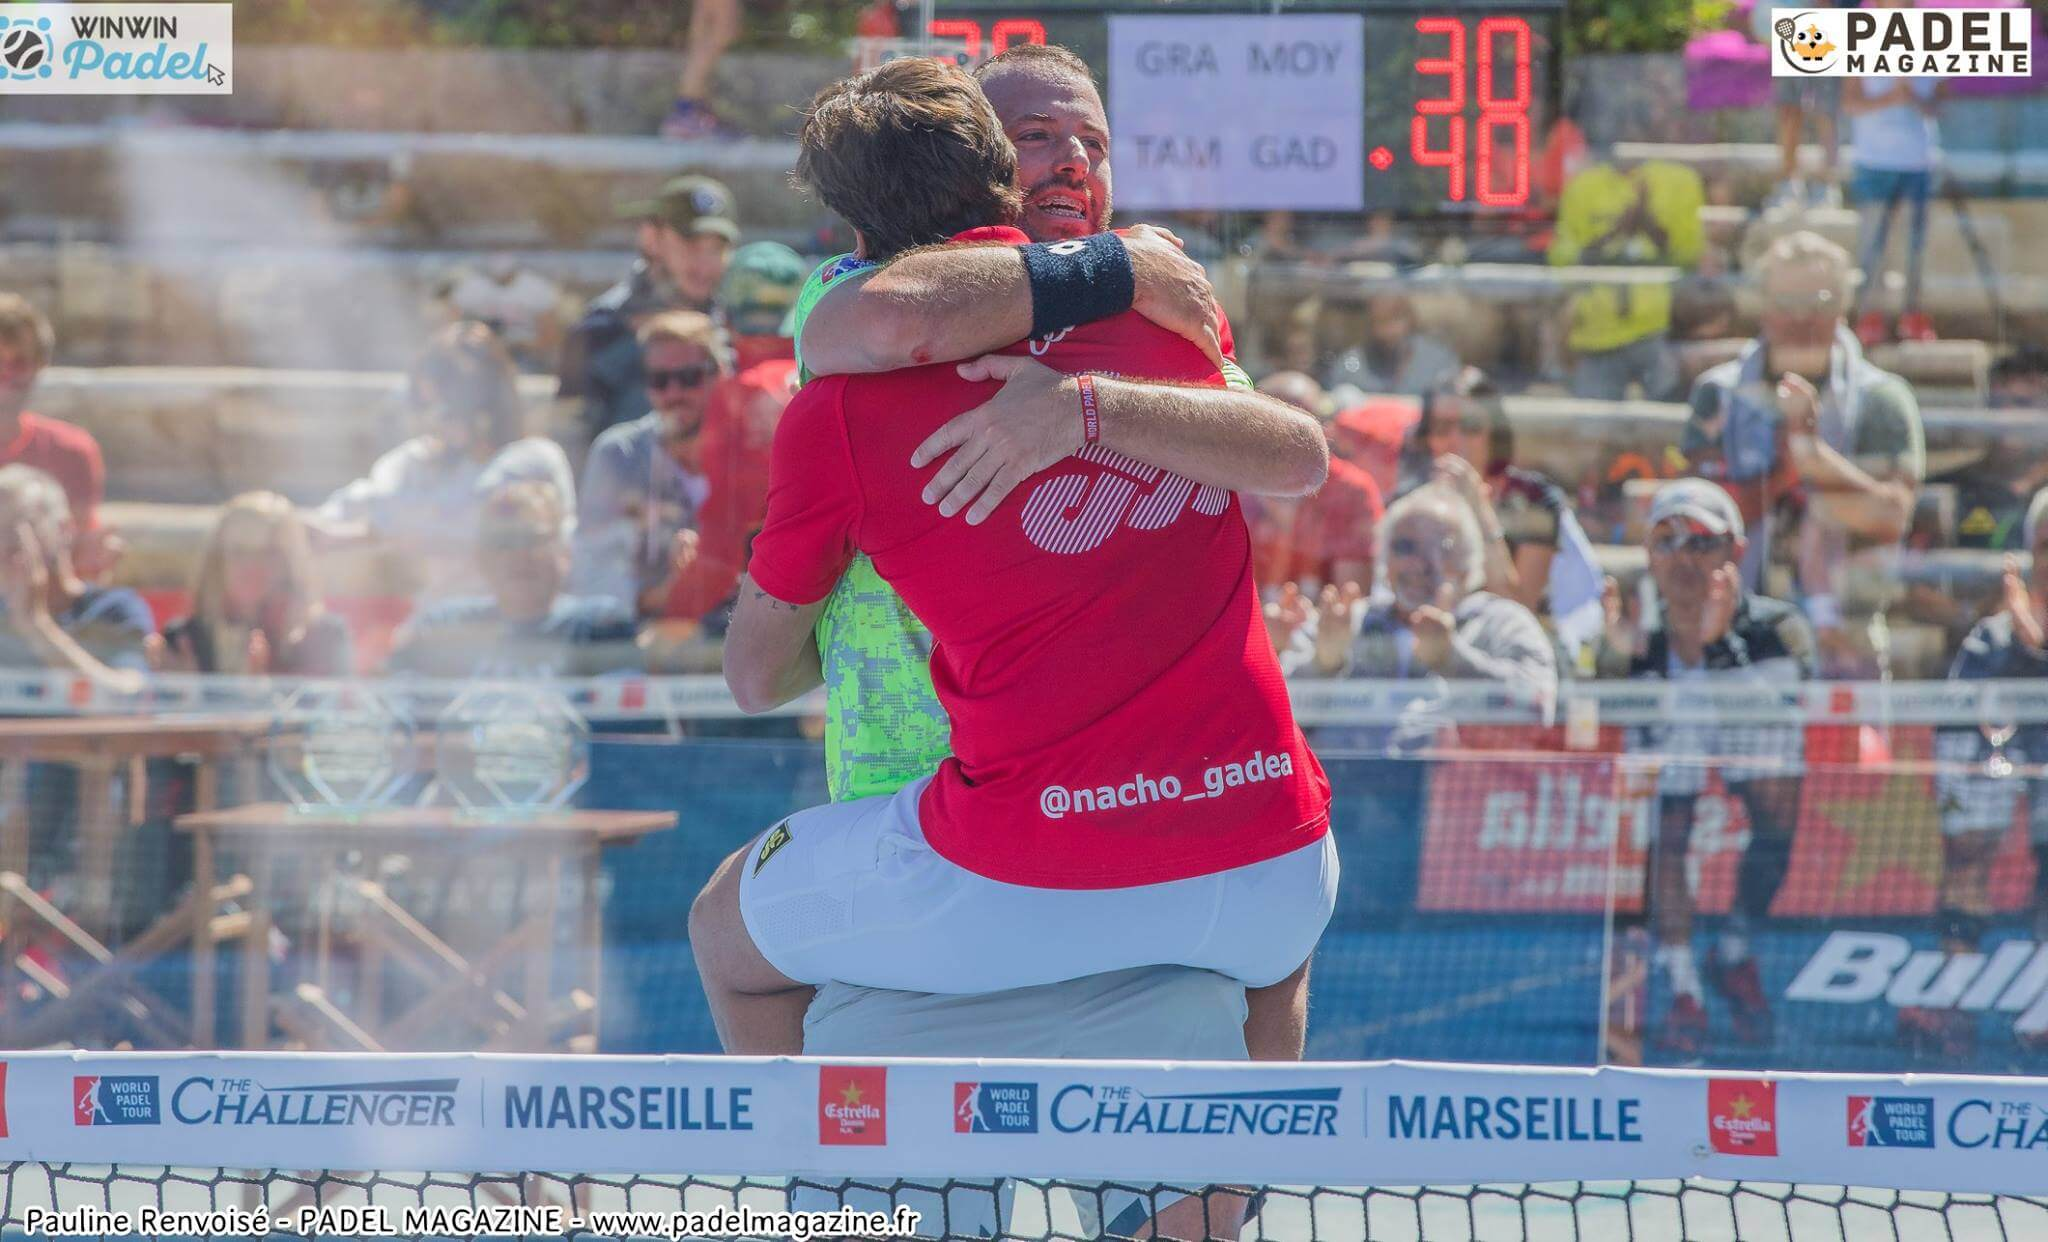 Tamame / Gadea: The Kings of Challenger WinWin Padel Cabriès